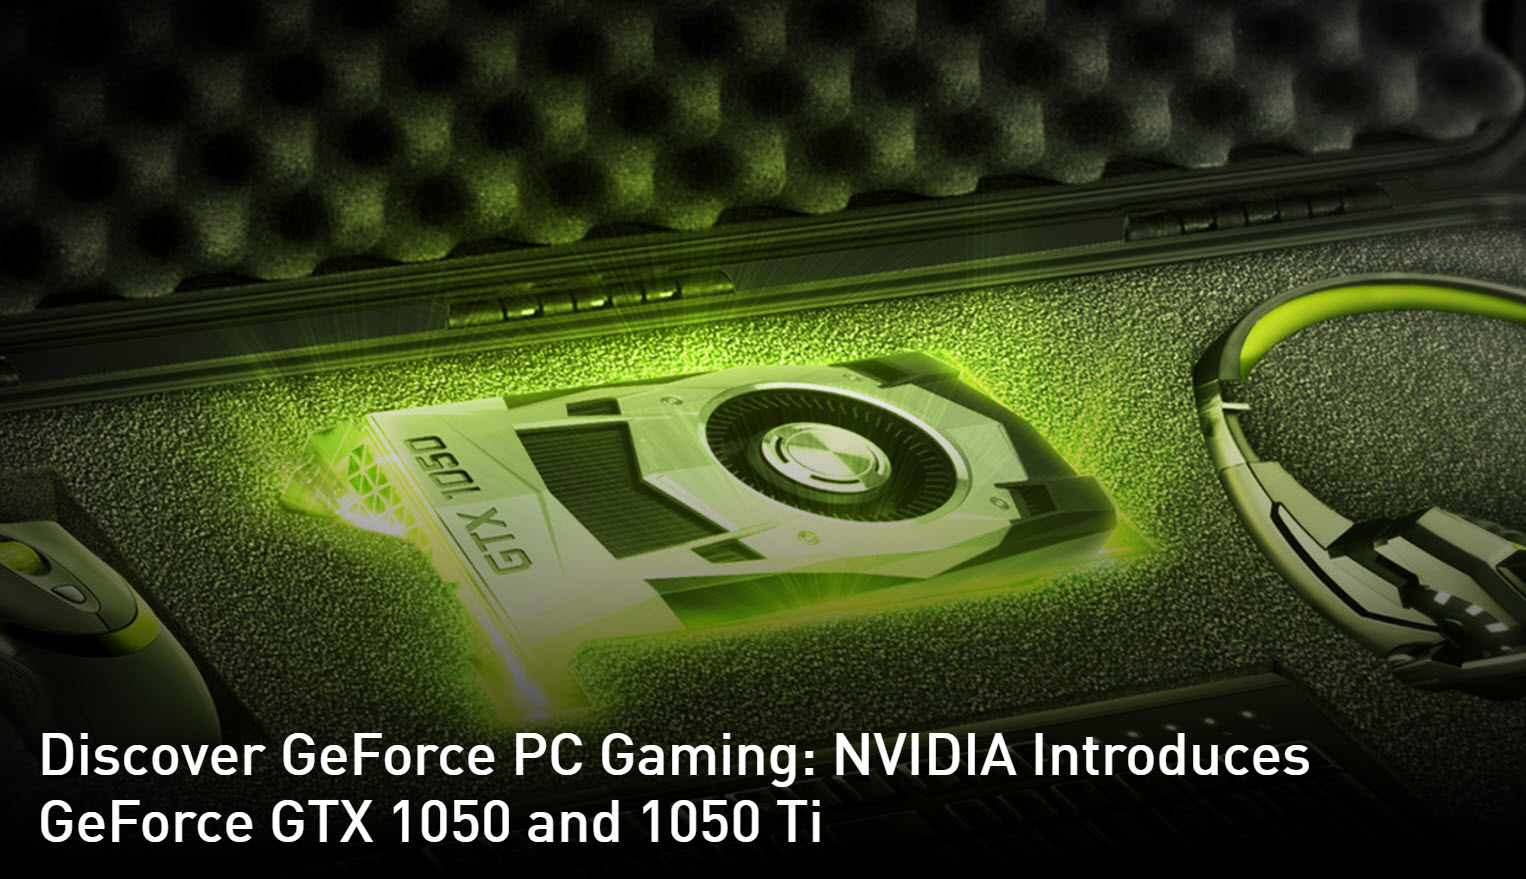 Nvidia Geforce Gtx 1050 Ti And Graphics Card Announced Inno 3d 1050ti 4gb Ddr5 Compact